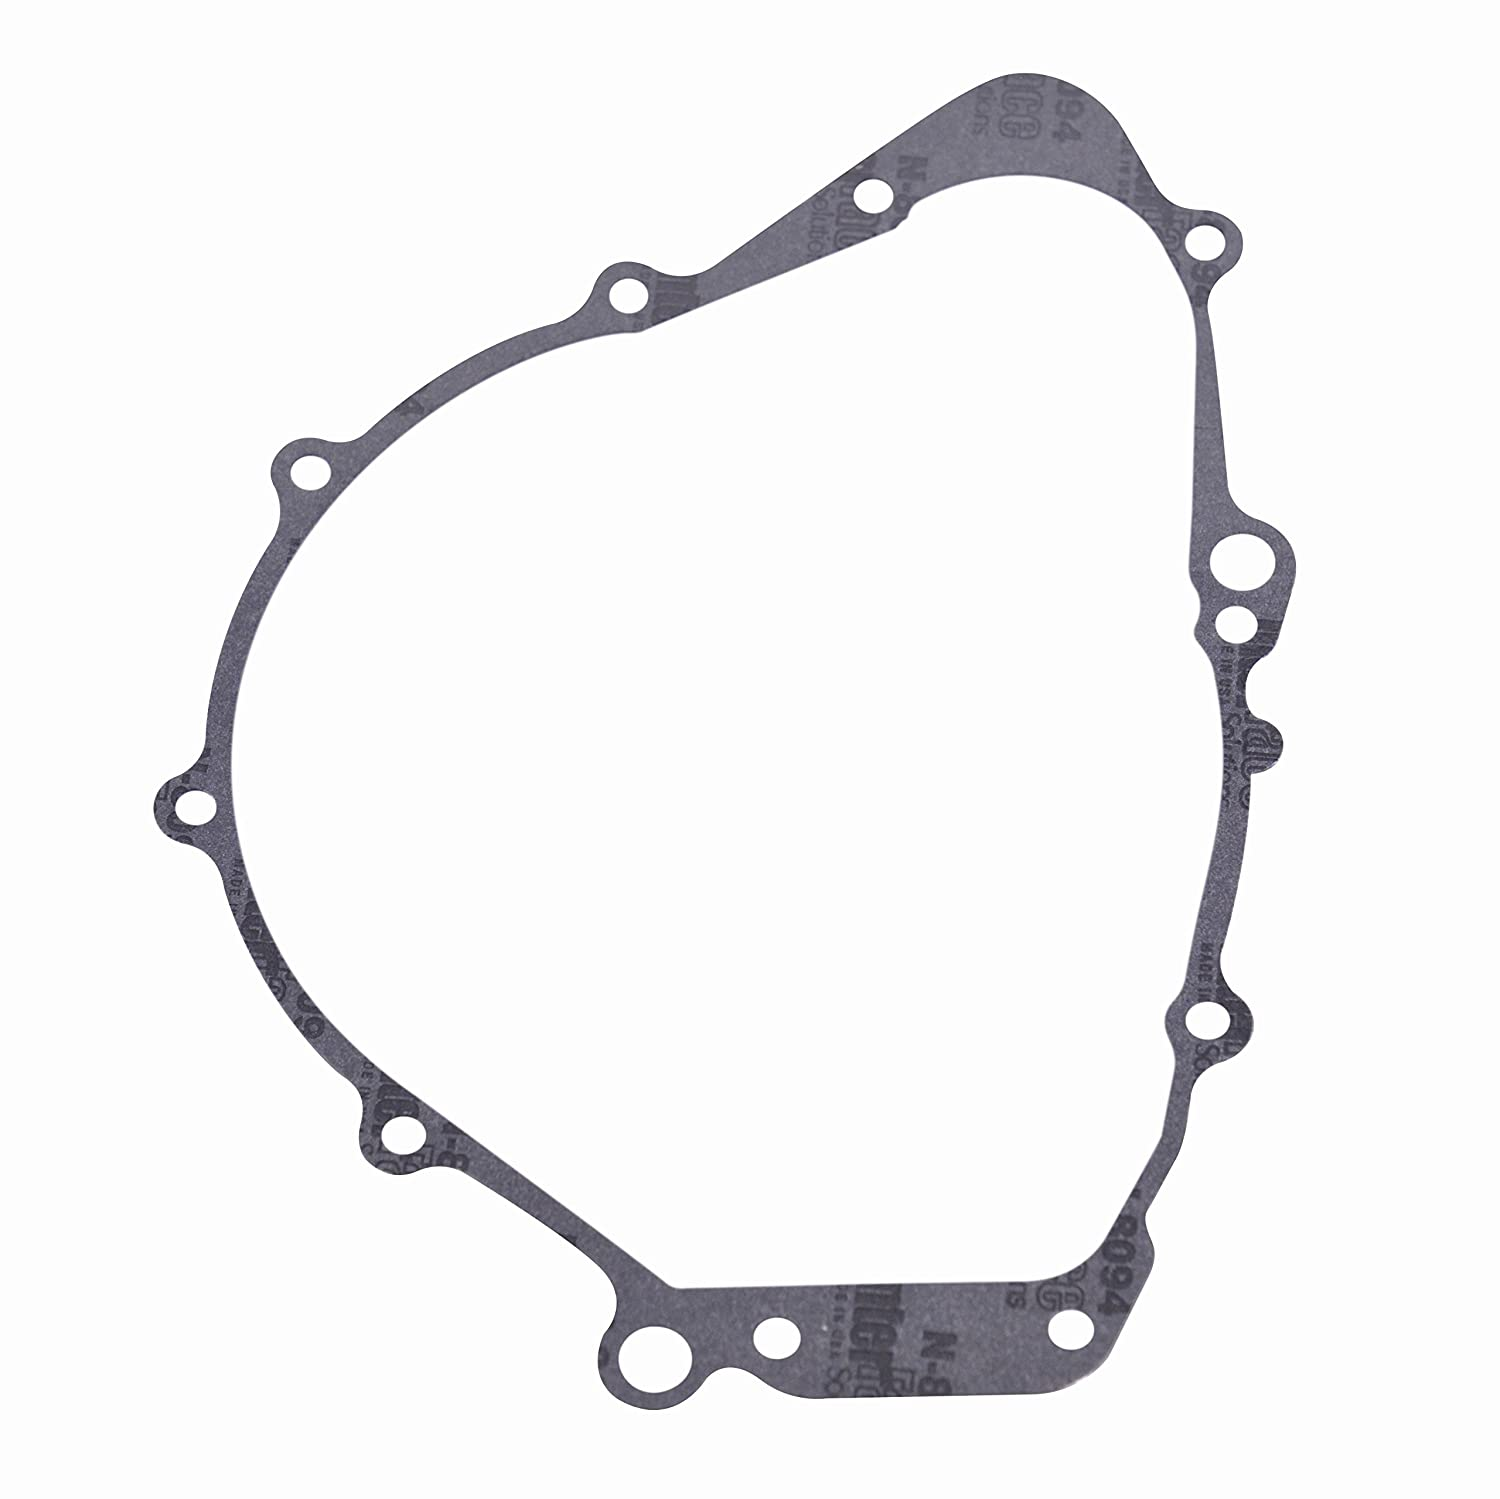 Crankcase Cover Gasket For Yamaha YFM 600 YFM600 Grizzly 600 1998 1999 2000 2001 OEM Repl.# 4WV-15451-00-00